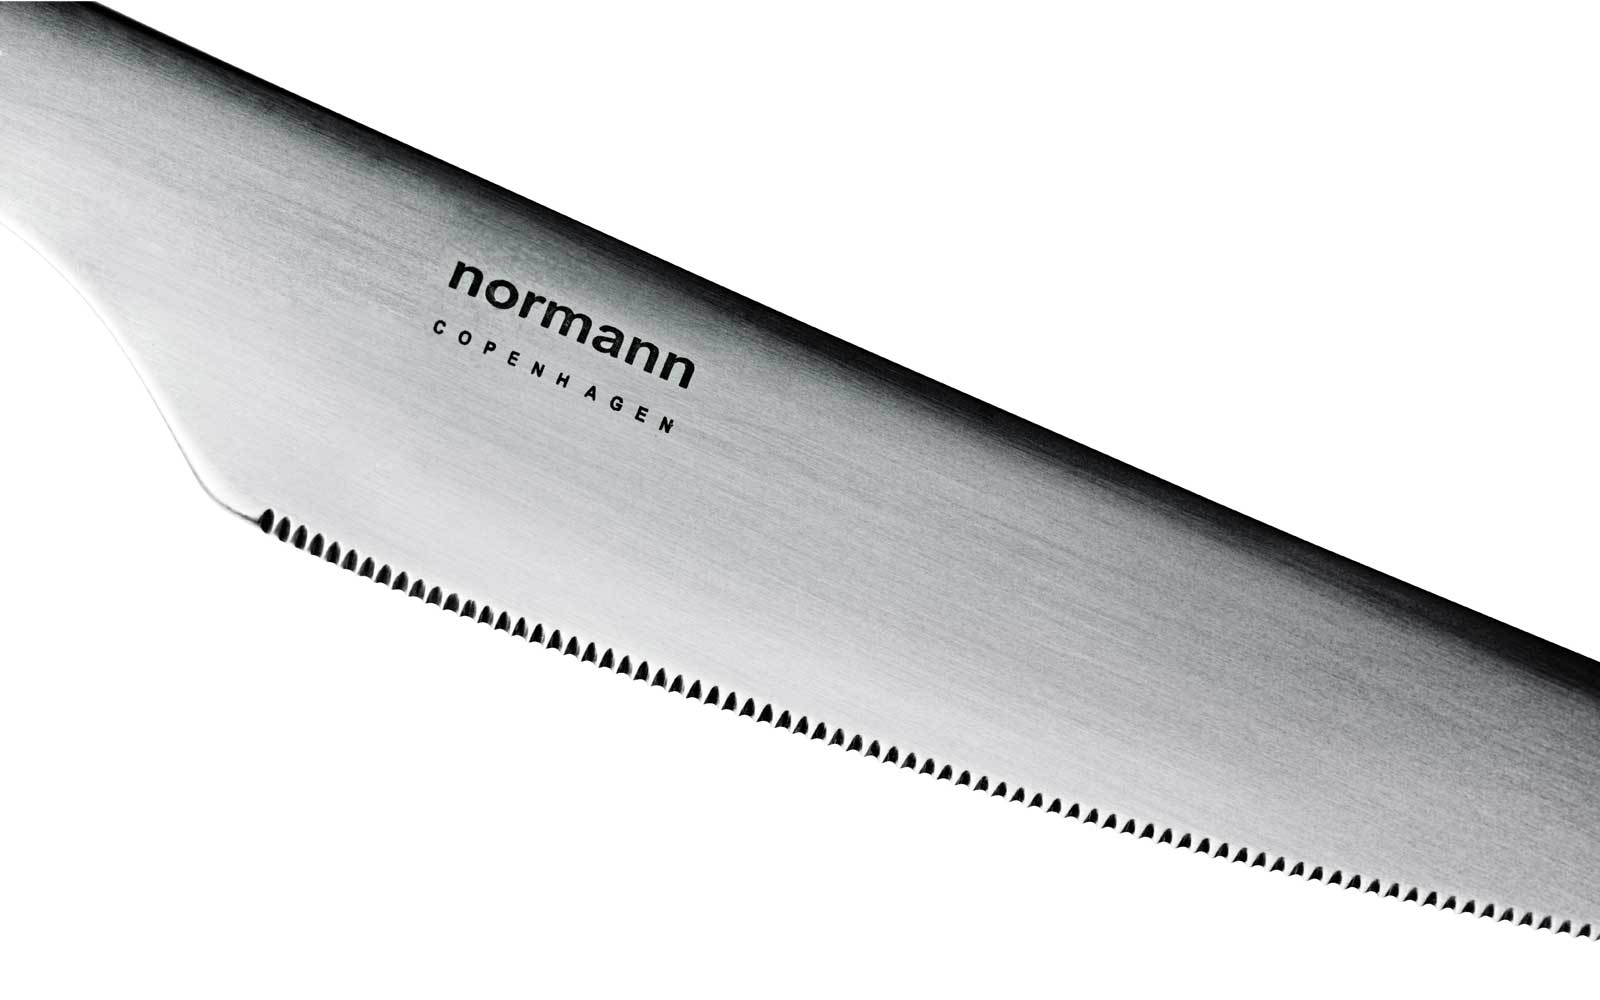 Normann Cutlery knife detail on white background